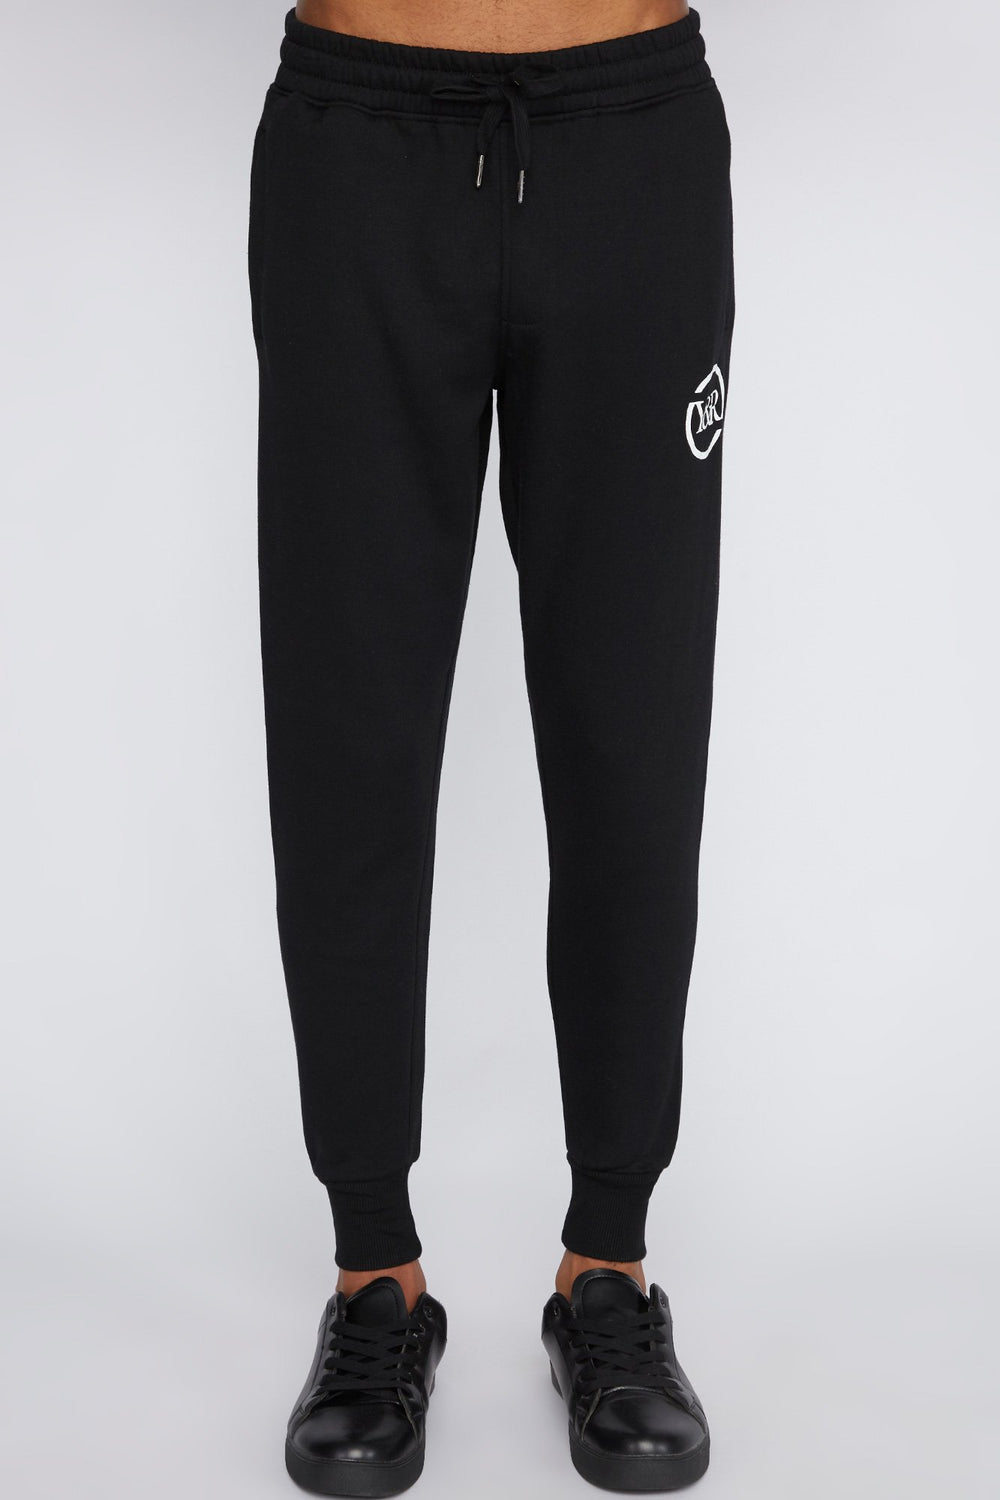 Young & Reckless Mens Solid Jogger Black